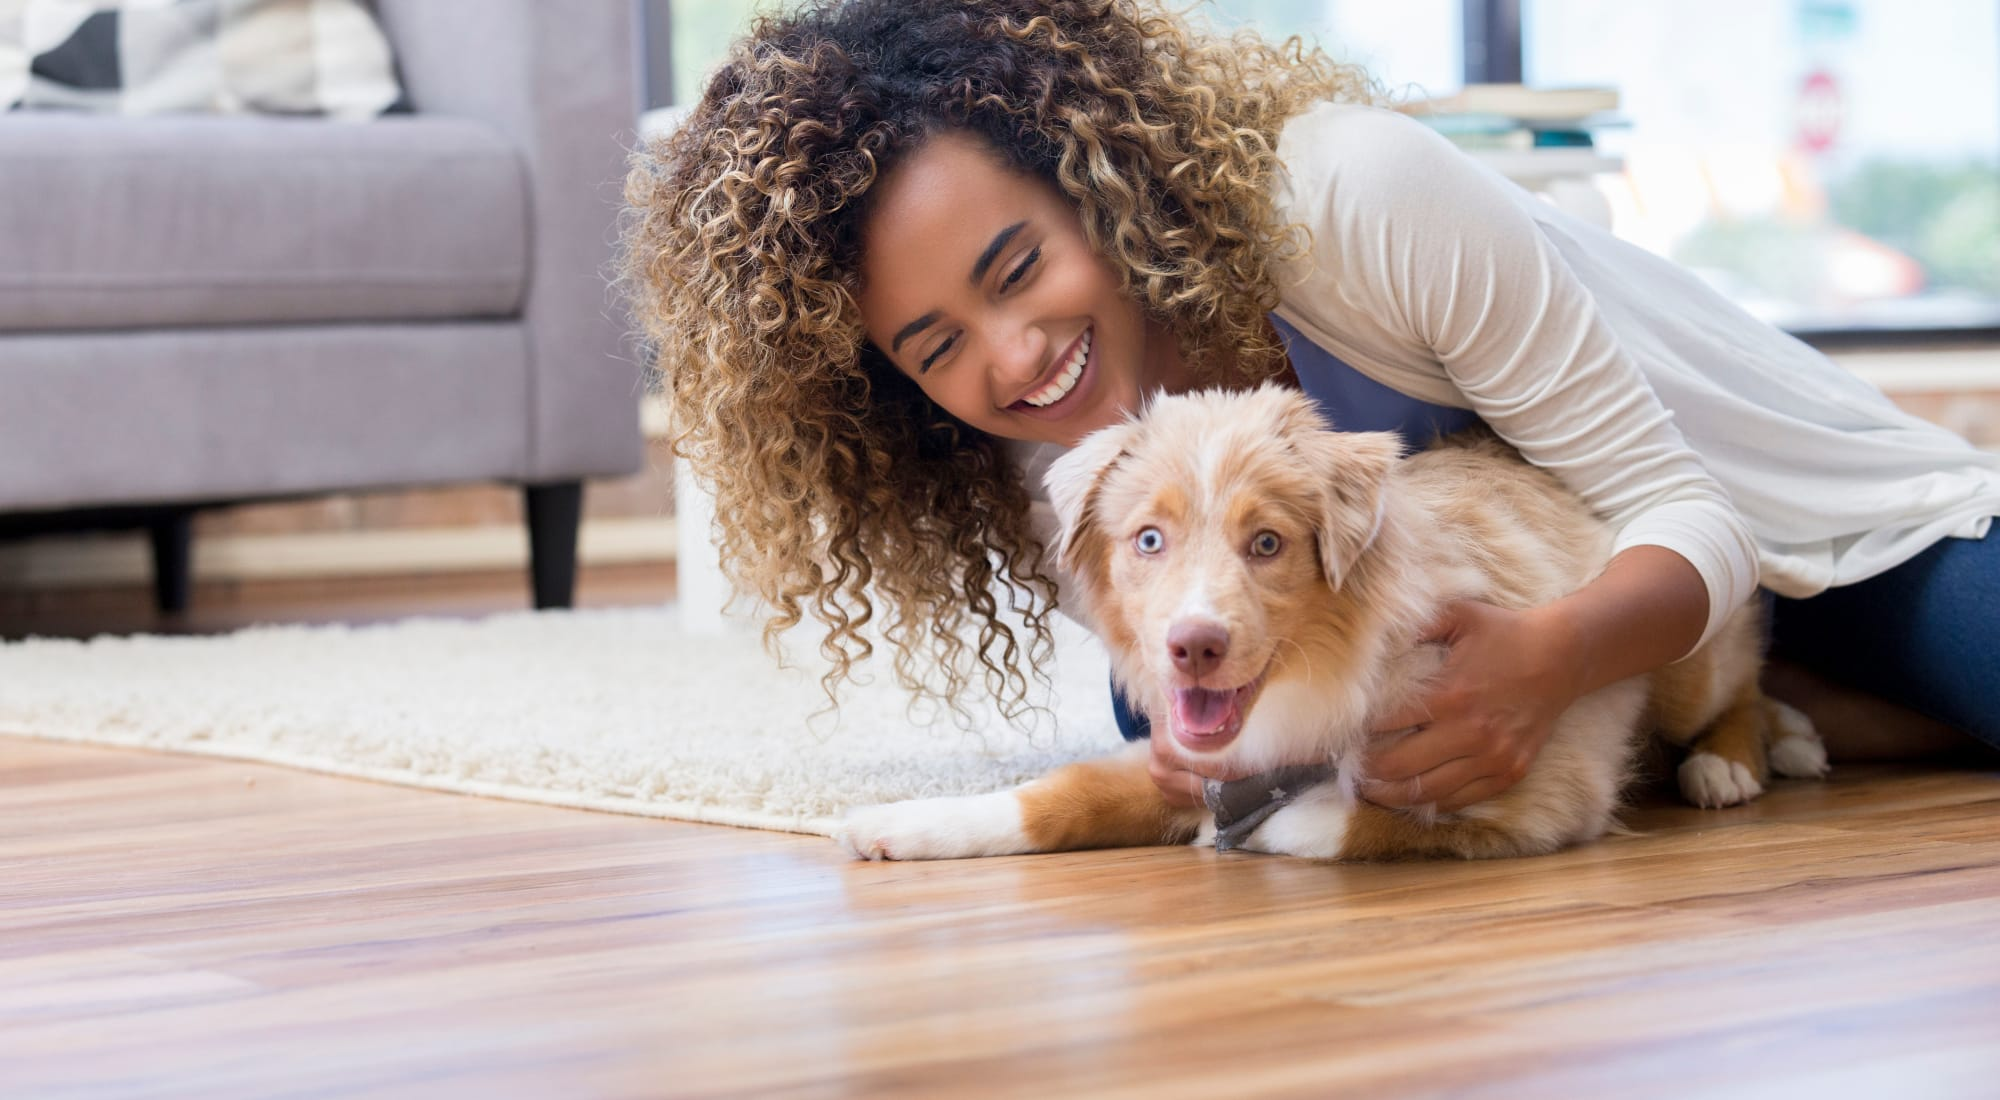 Pet-friendly apartments at The Alcott in Denver, Colorado